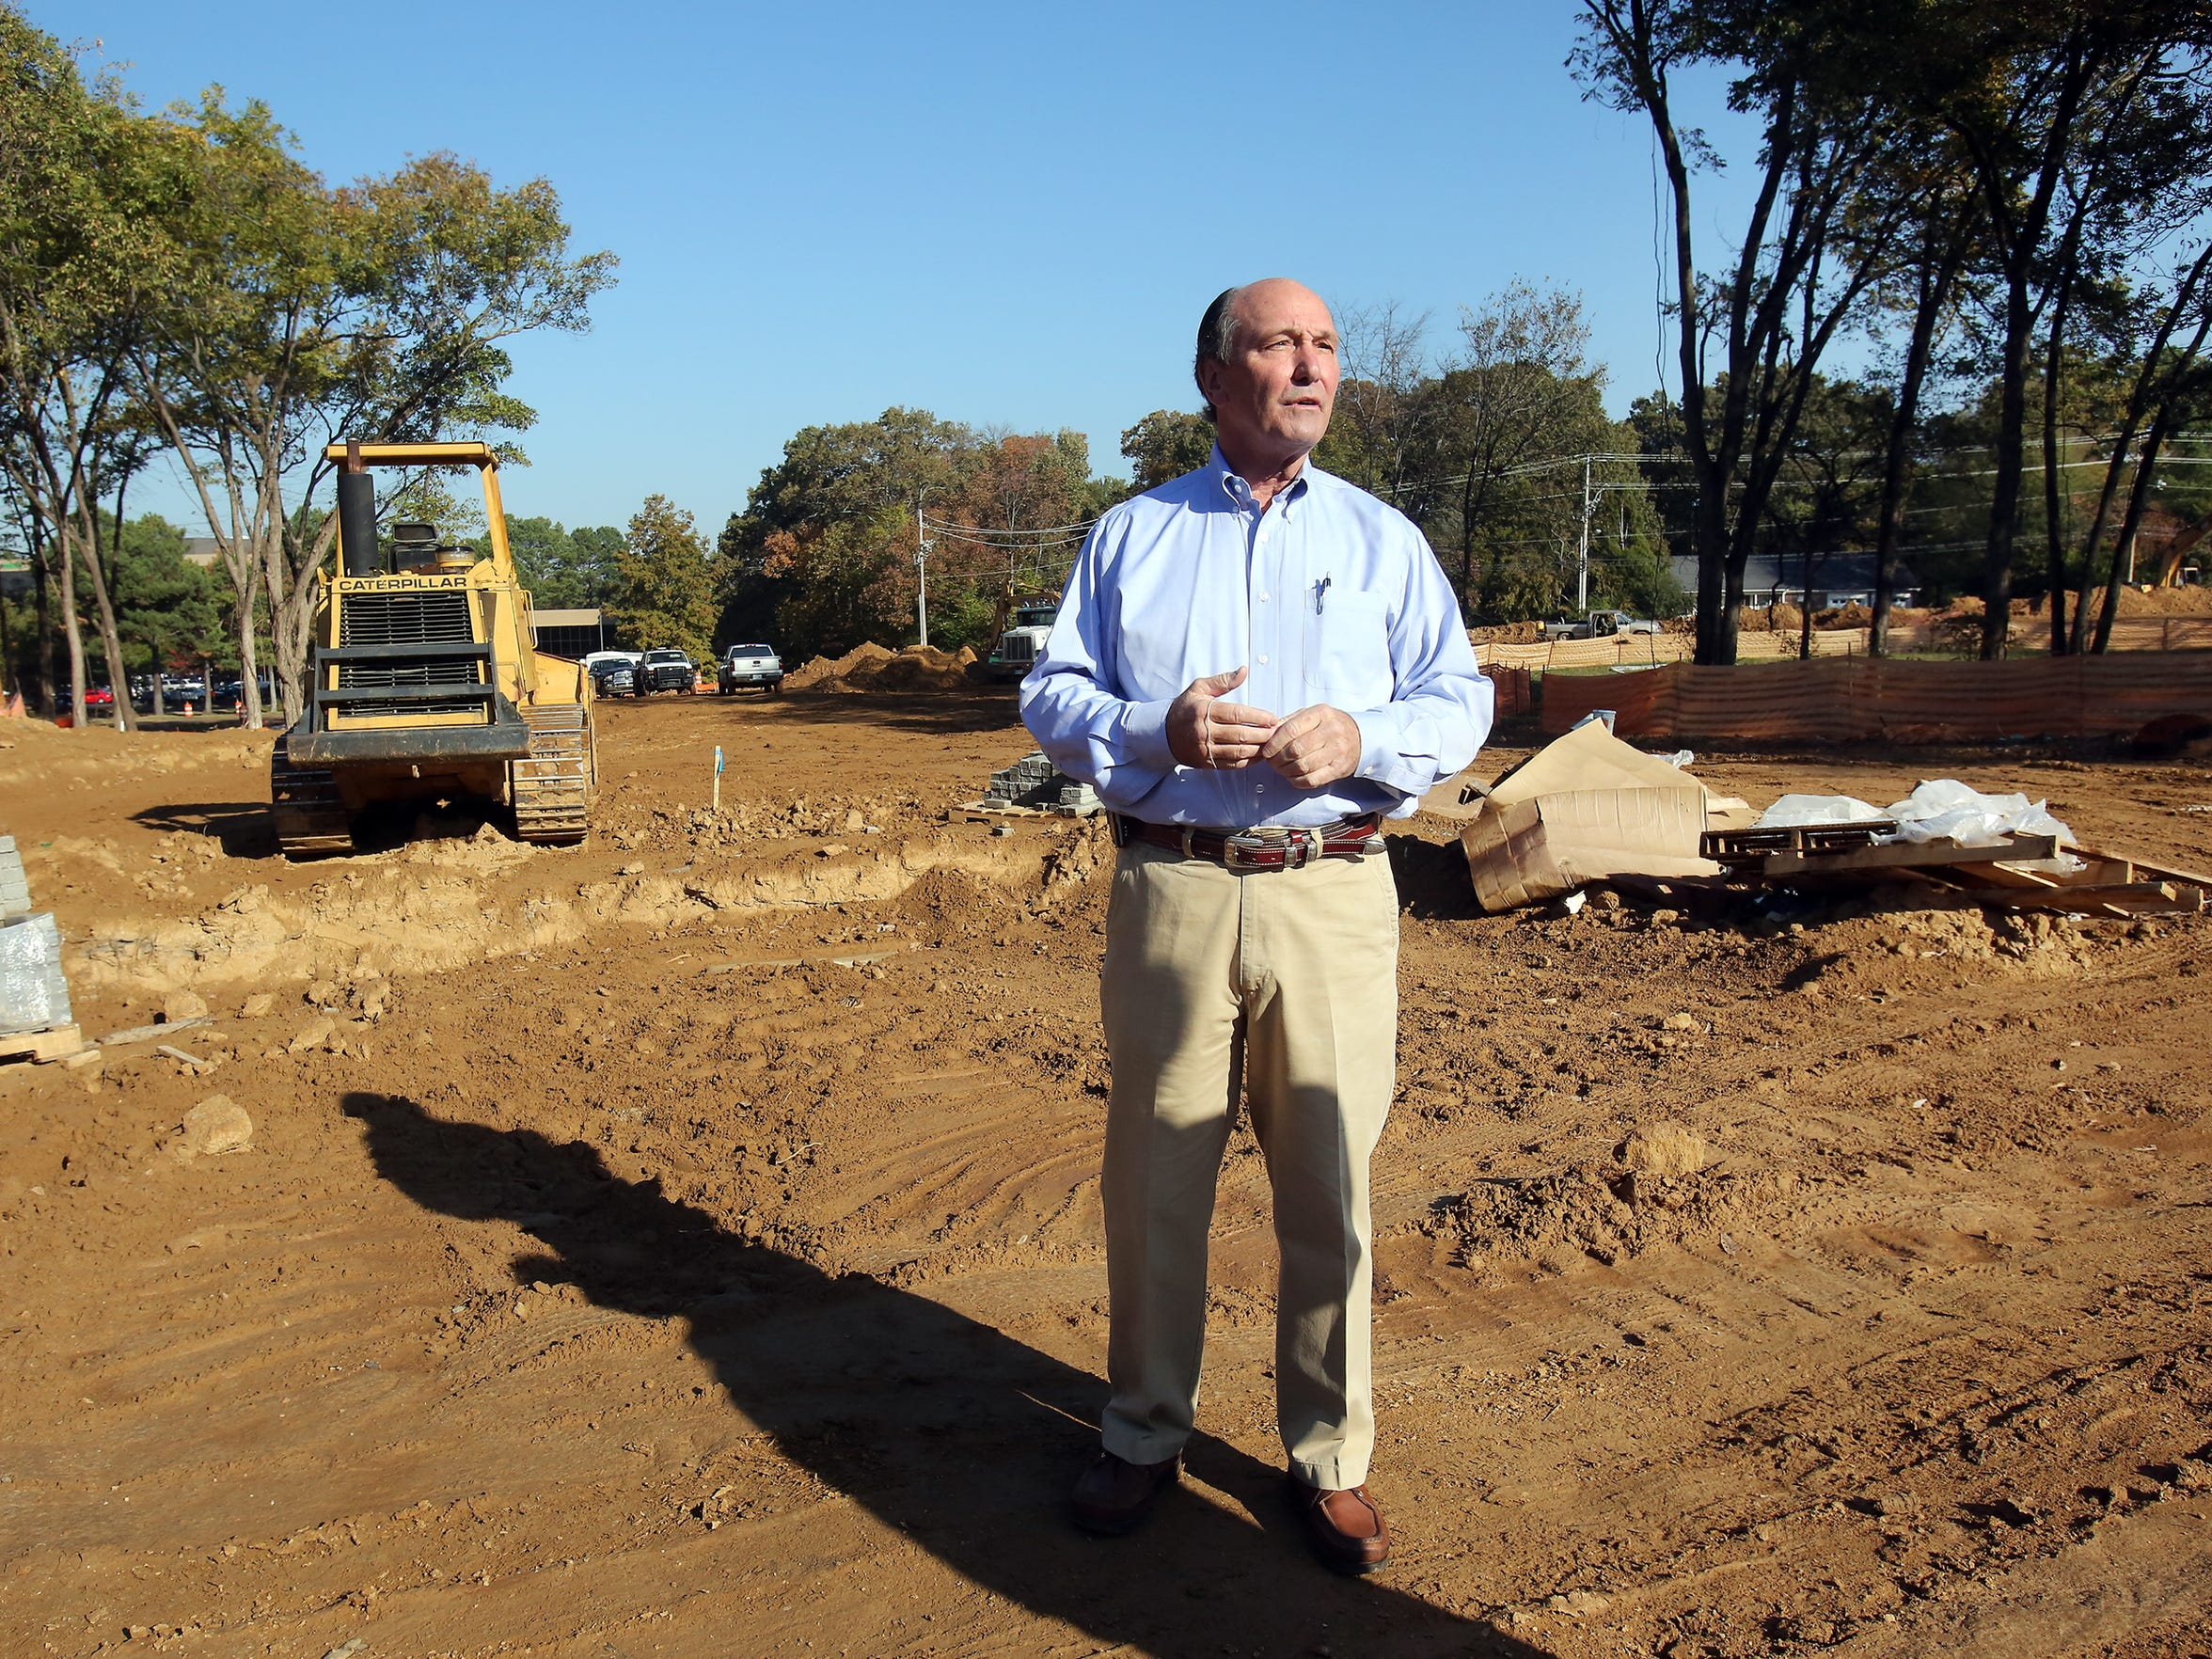 Ray Gill stands in the midst of construction on the TraVure site at Poplar and Kirby Parkway . The development is in the early stages and is a sign of the changing face of Germantown.